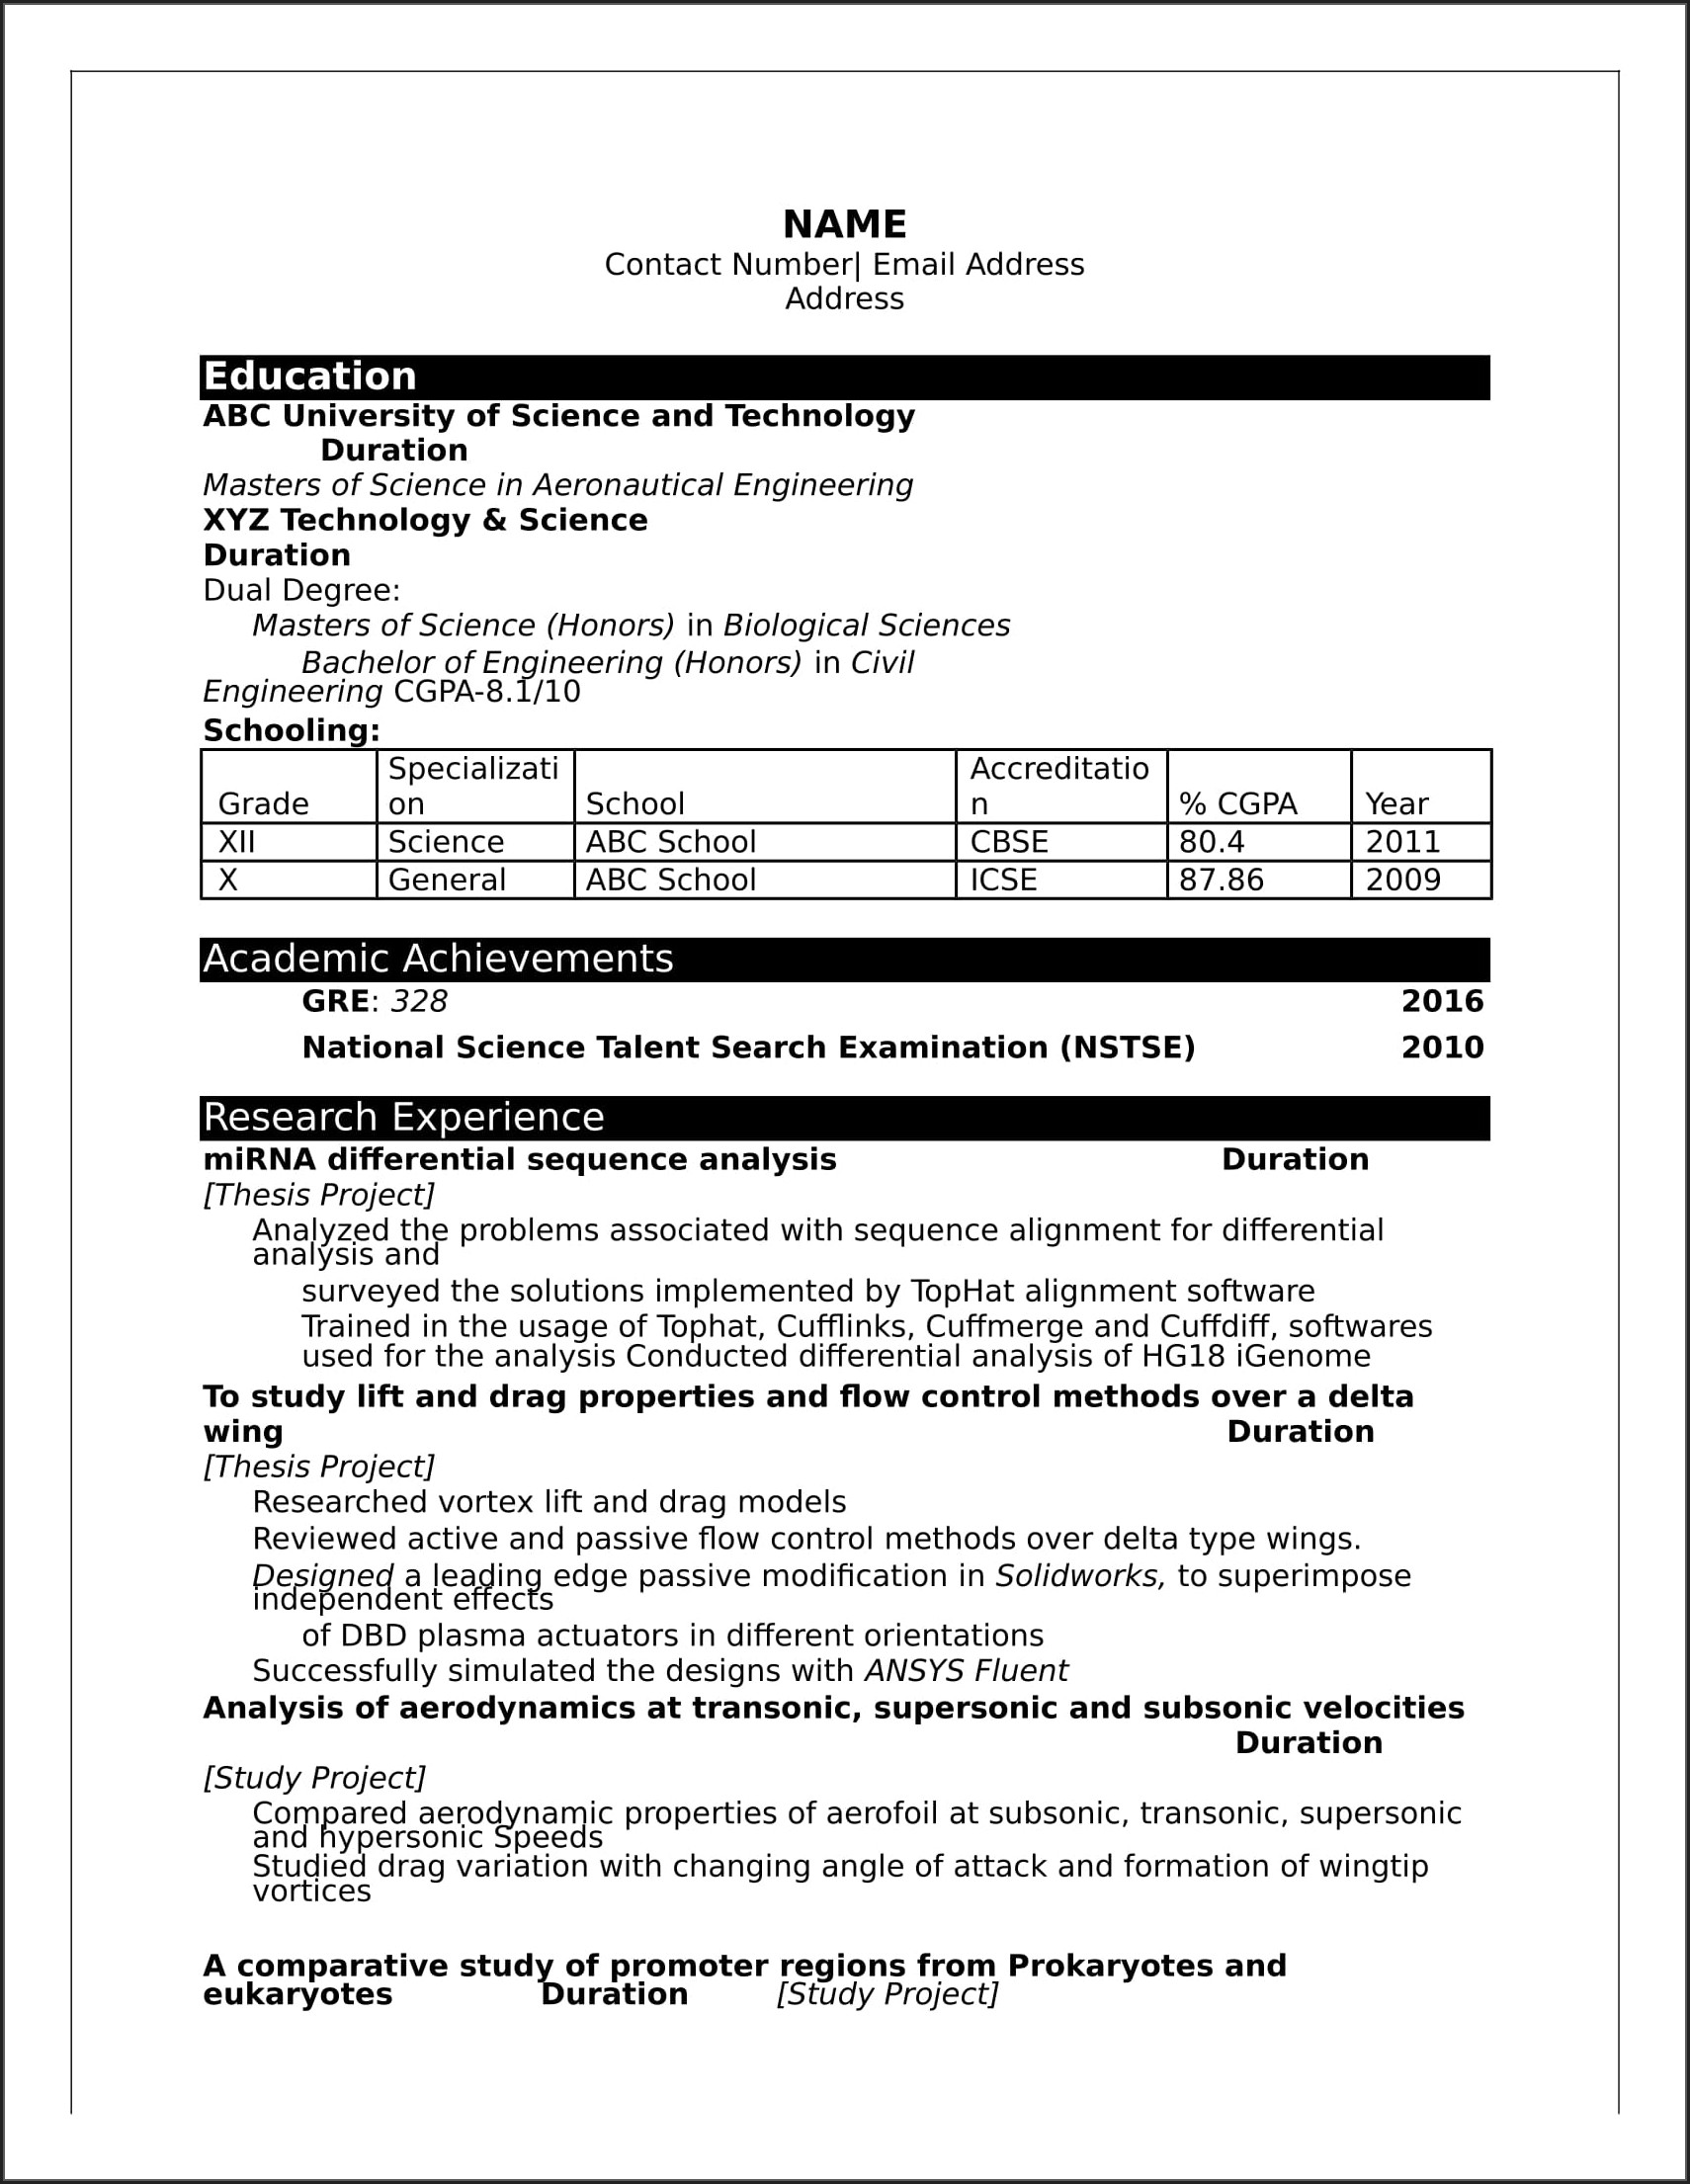 Attractive Resume Templates Free Download Indian